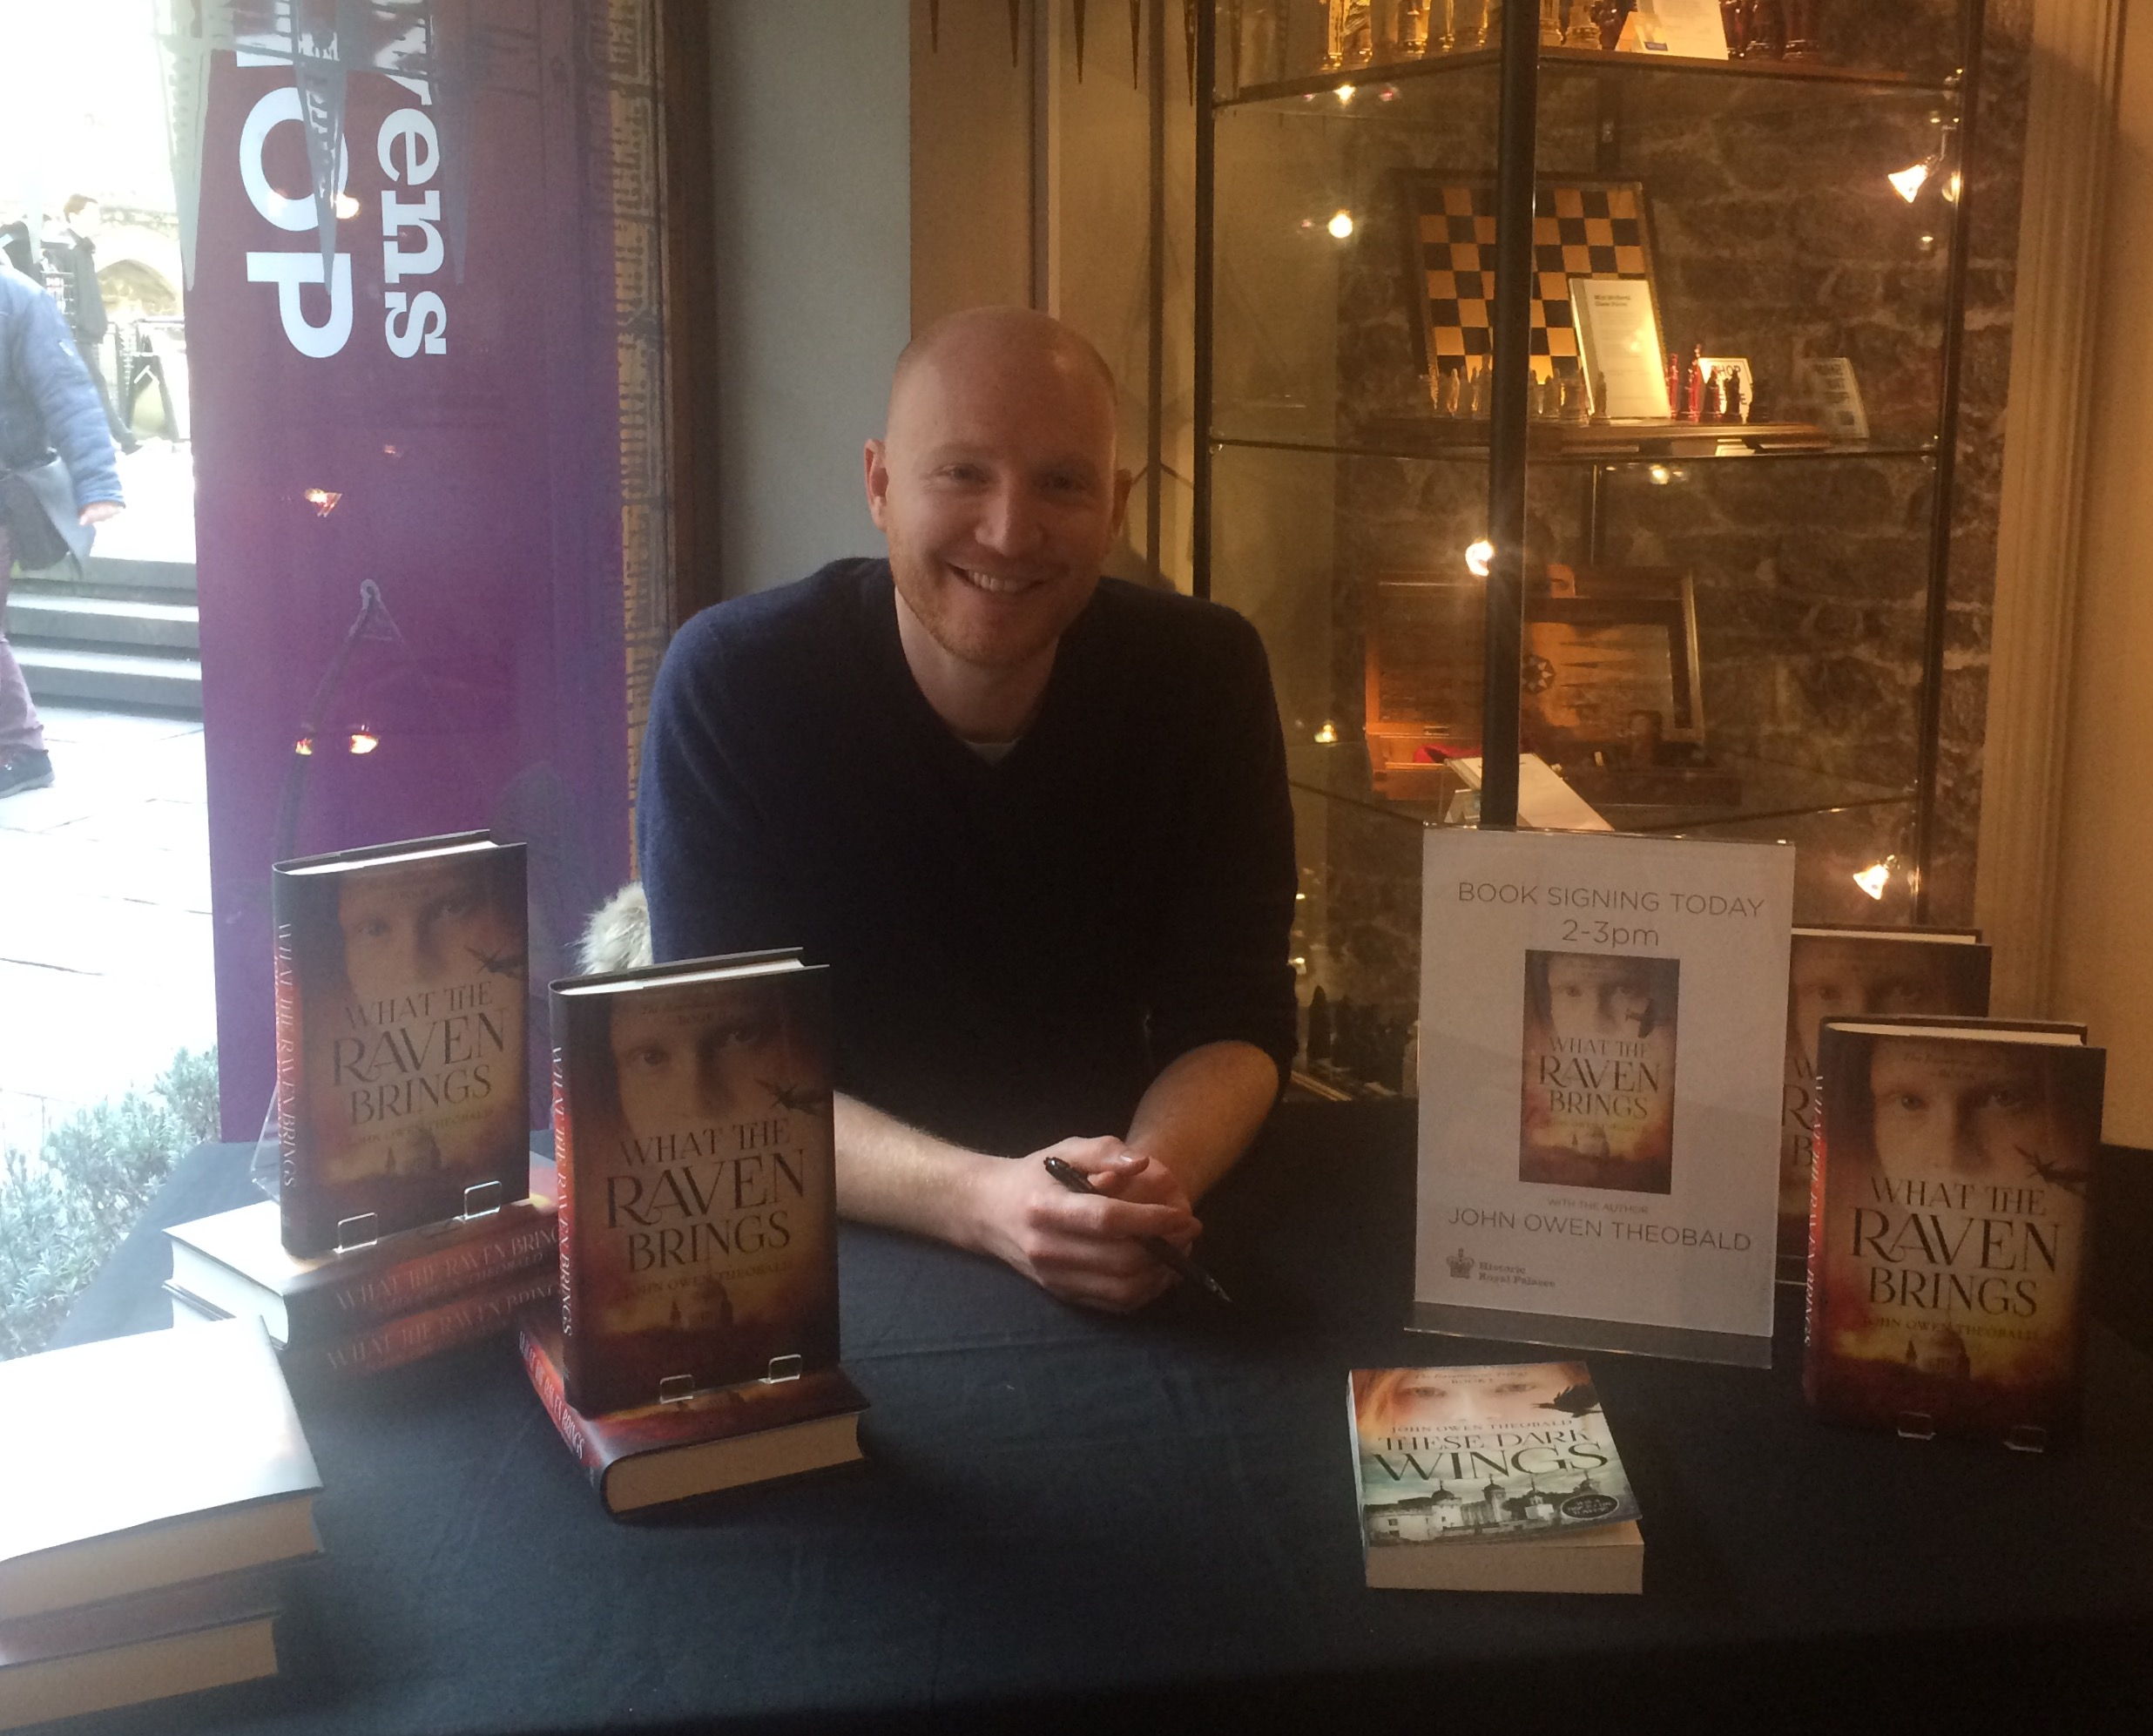 Had a great three days singing books at the Raven Shop - thanks to everyone who stopped by!